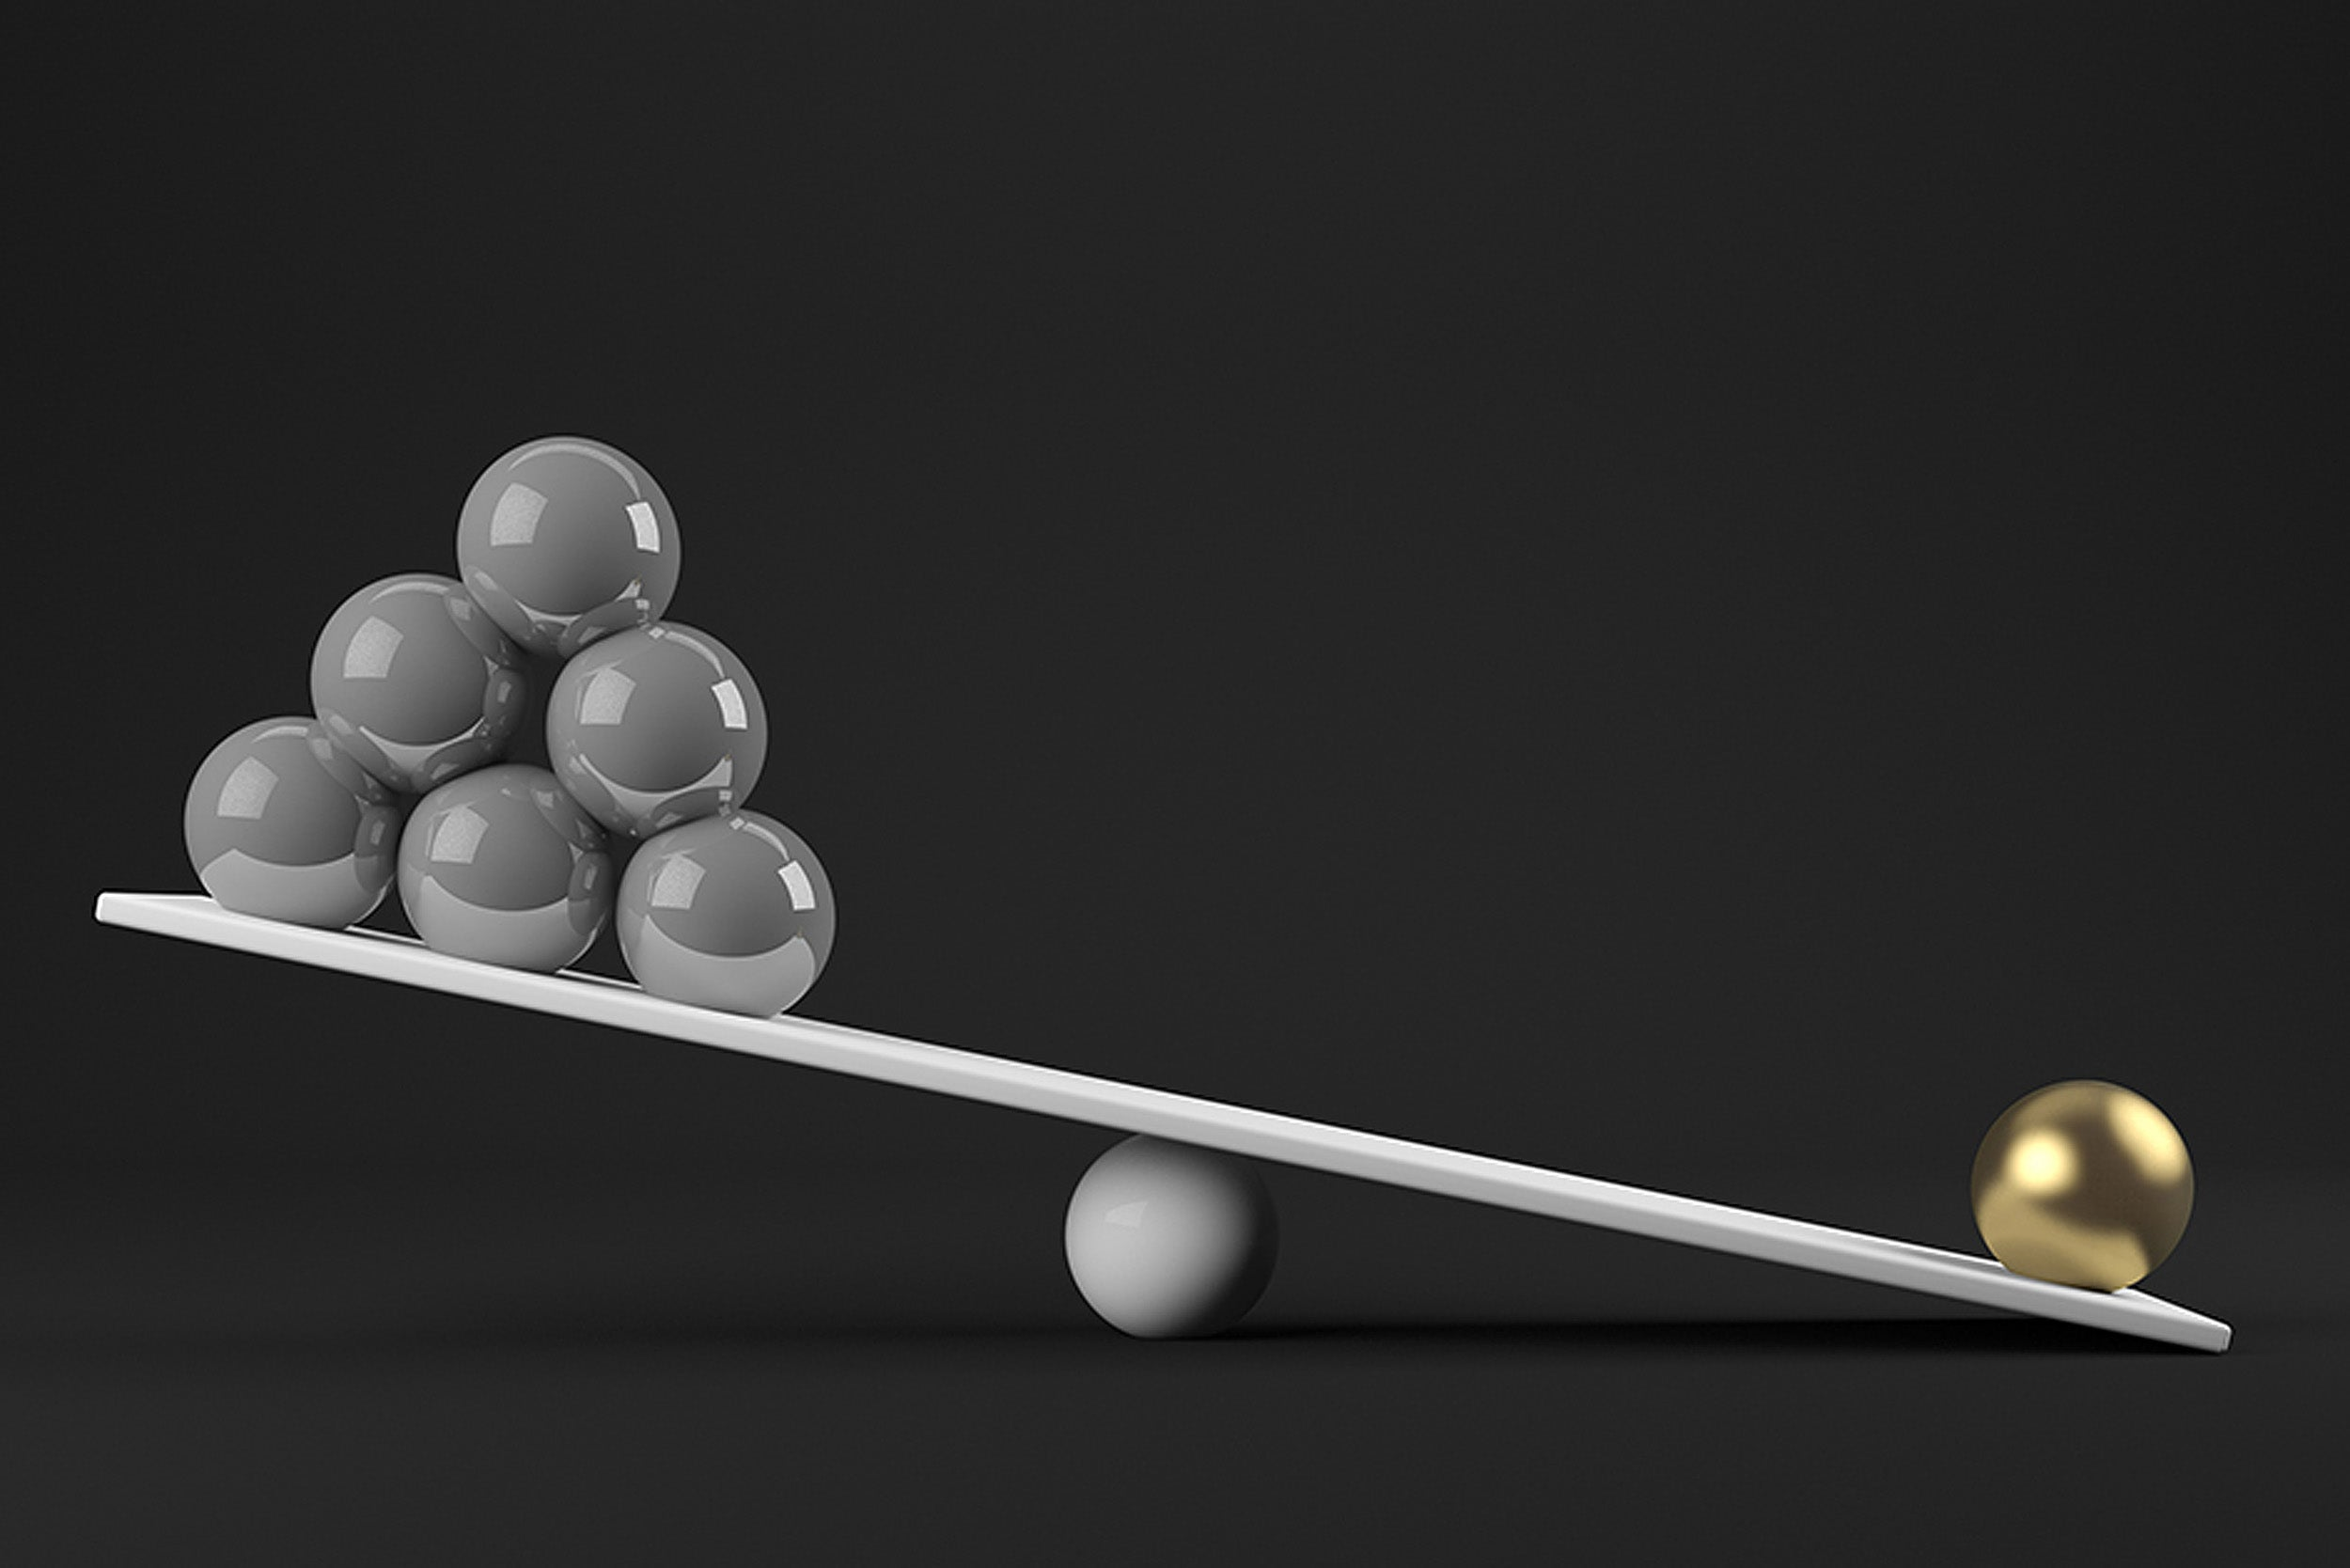 Balls balancing on a scale.